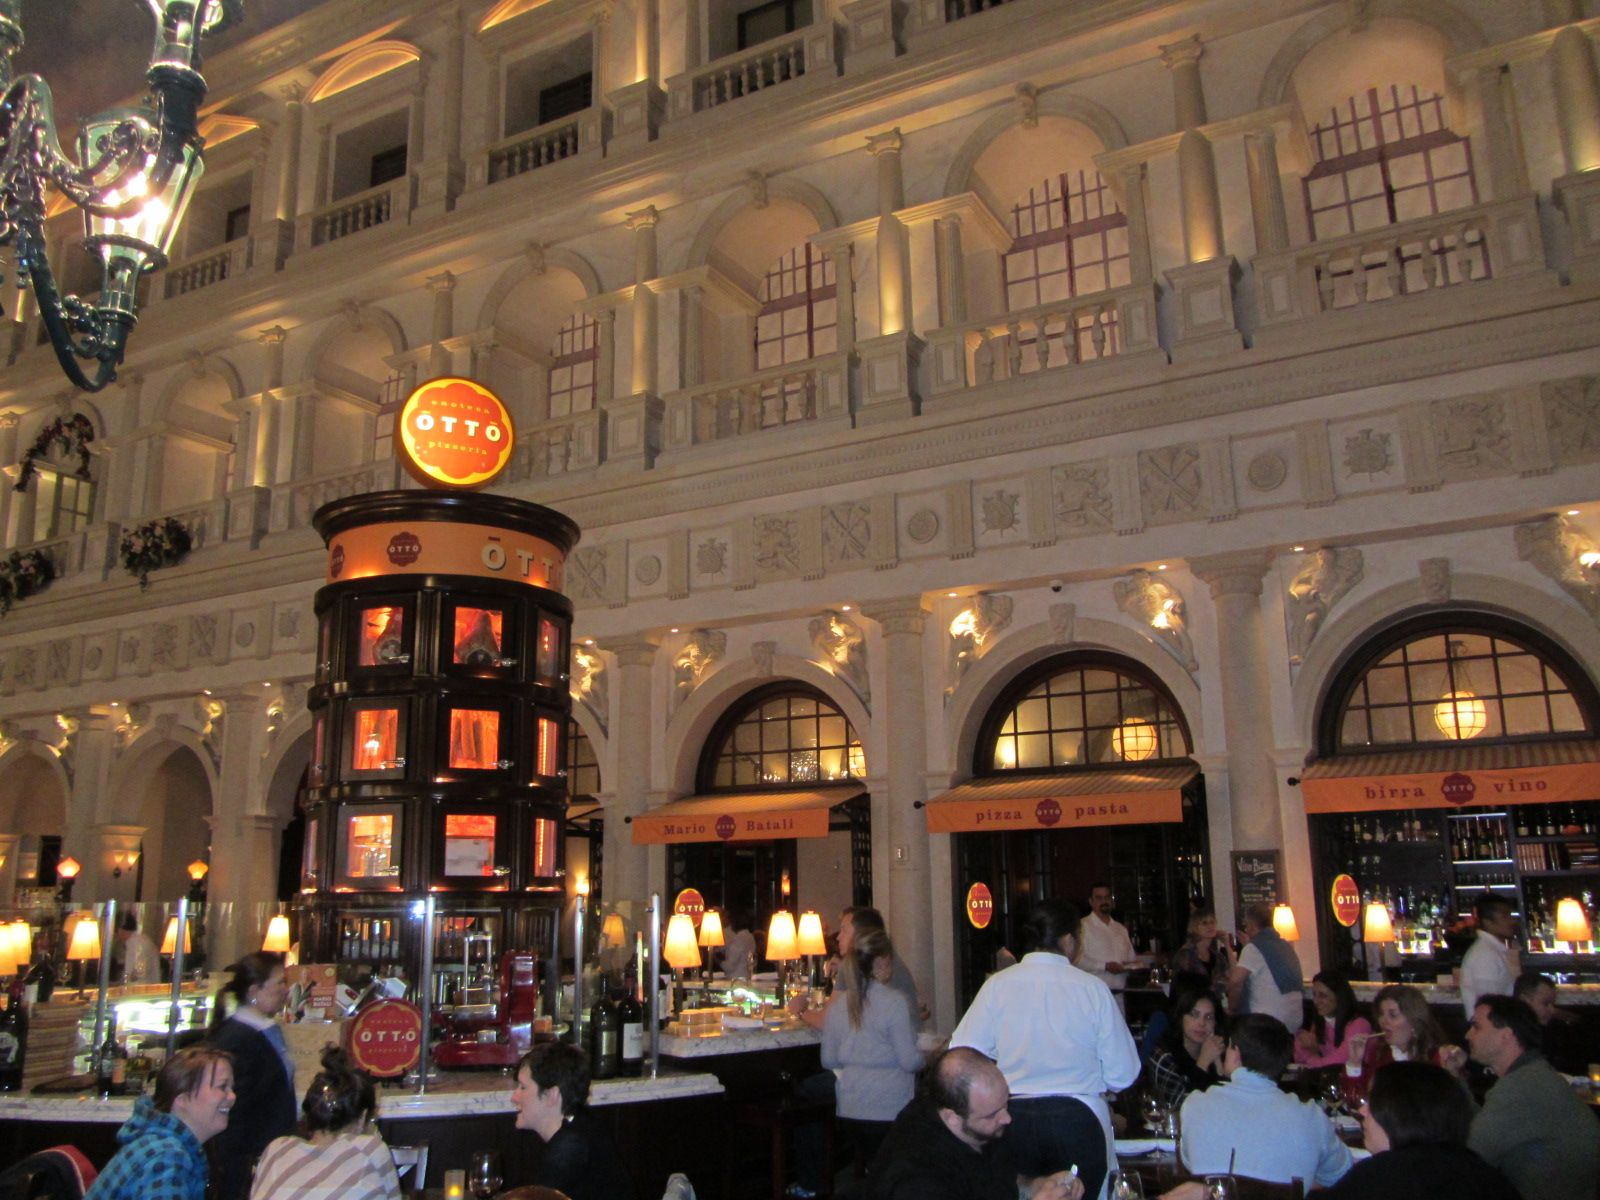 Otto Babyzimmer ~ Otto bar and pizzeria in st. marks square at the venetian hotel